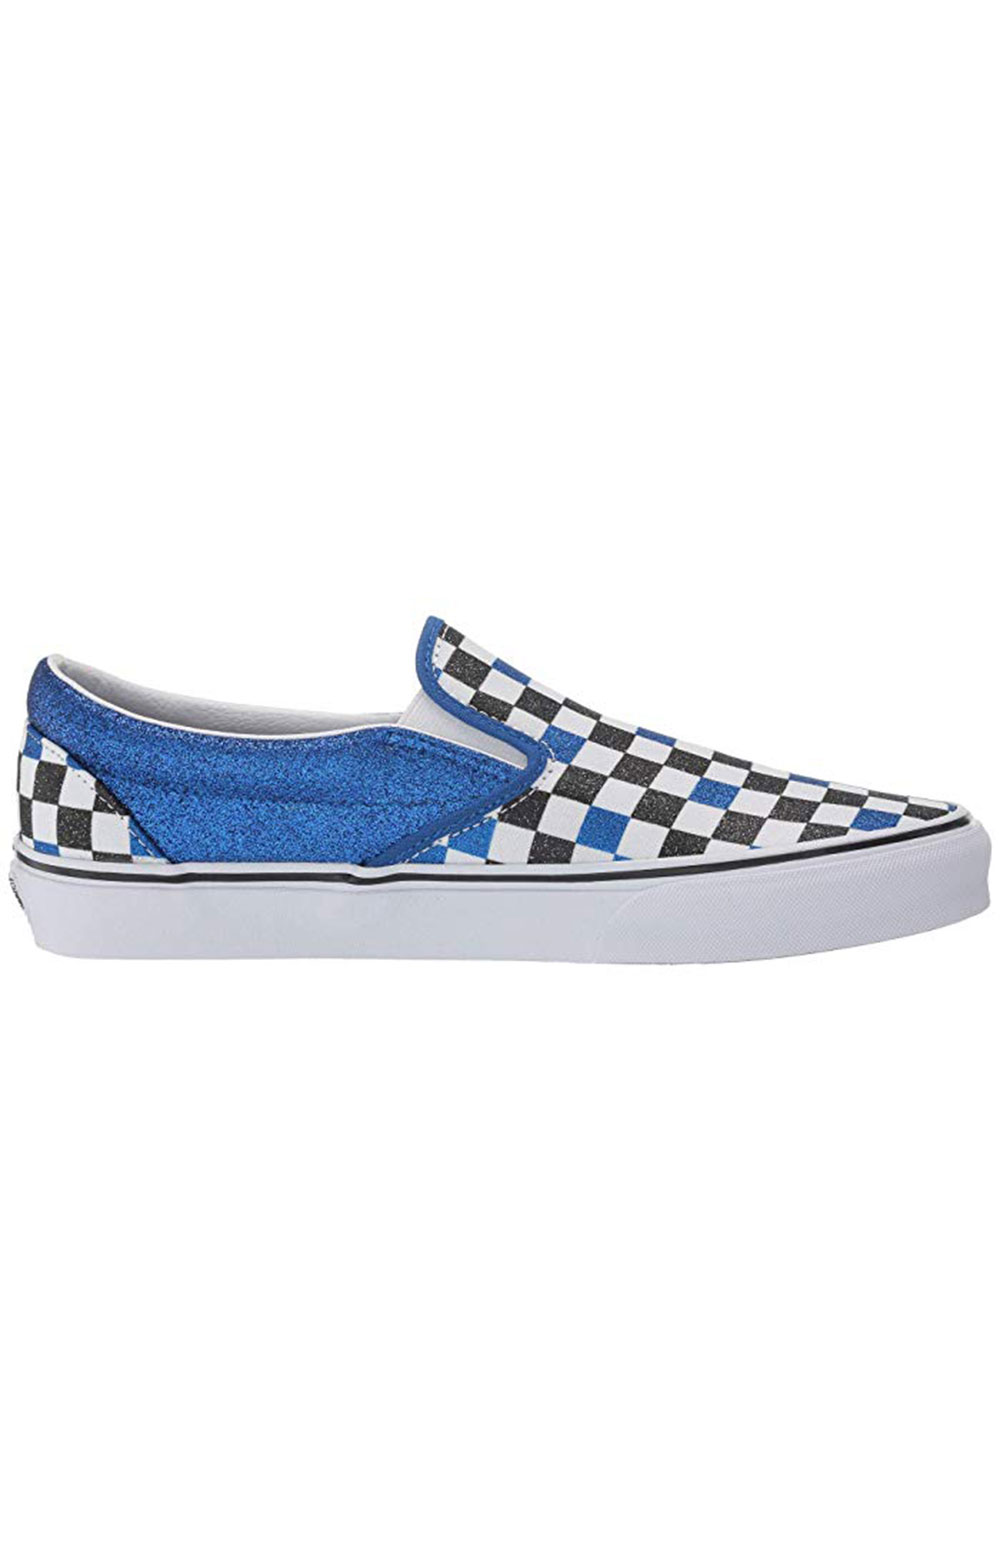 (BV3V8Z) Glitter Checkerboard Classic Slip-On Shoe - Princess Blue